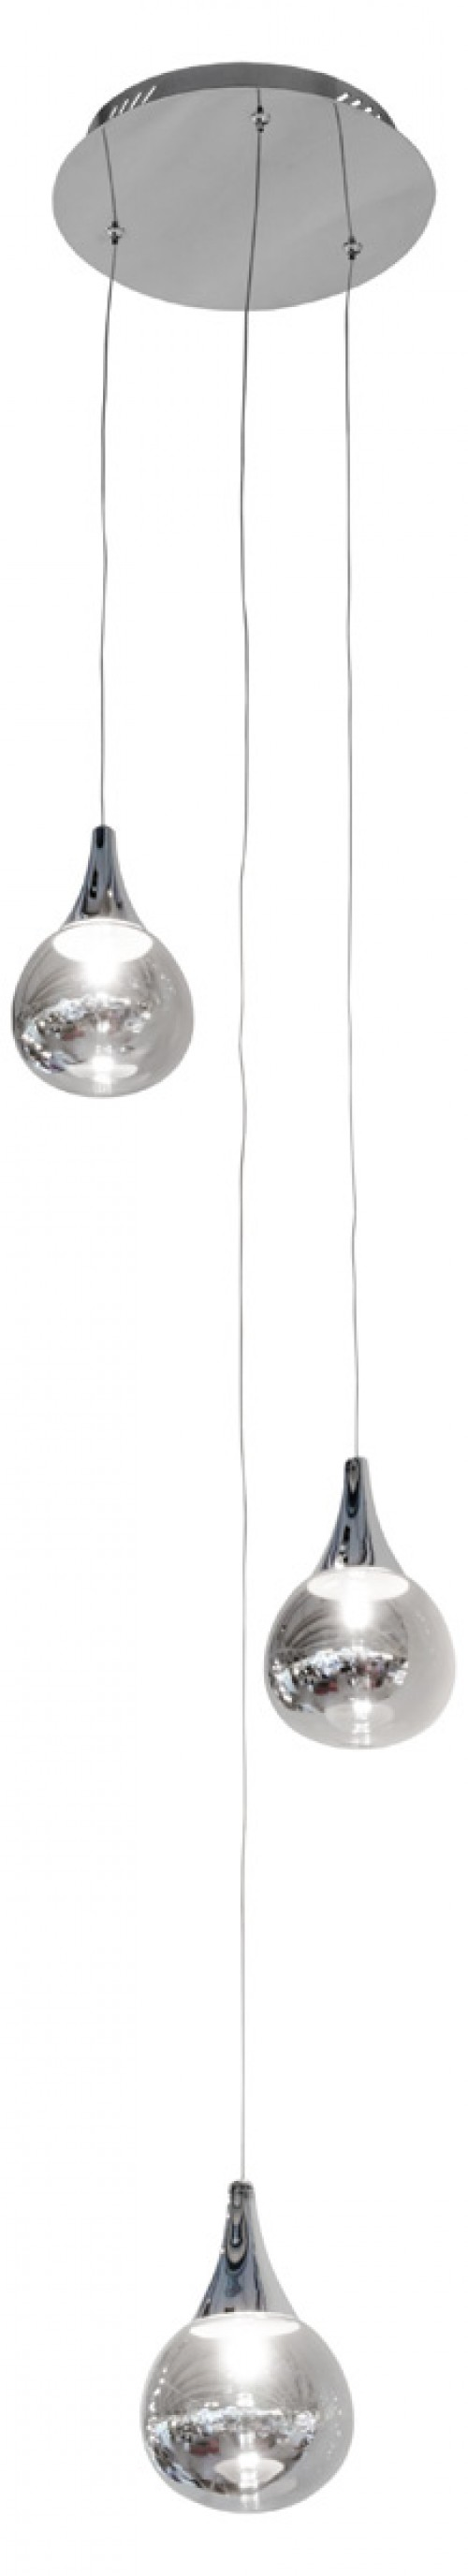 Mercury Droplet Pendant Light